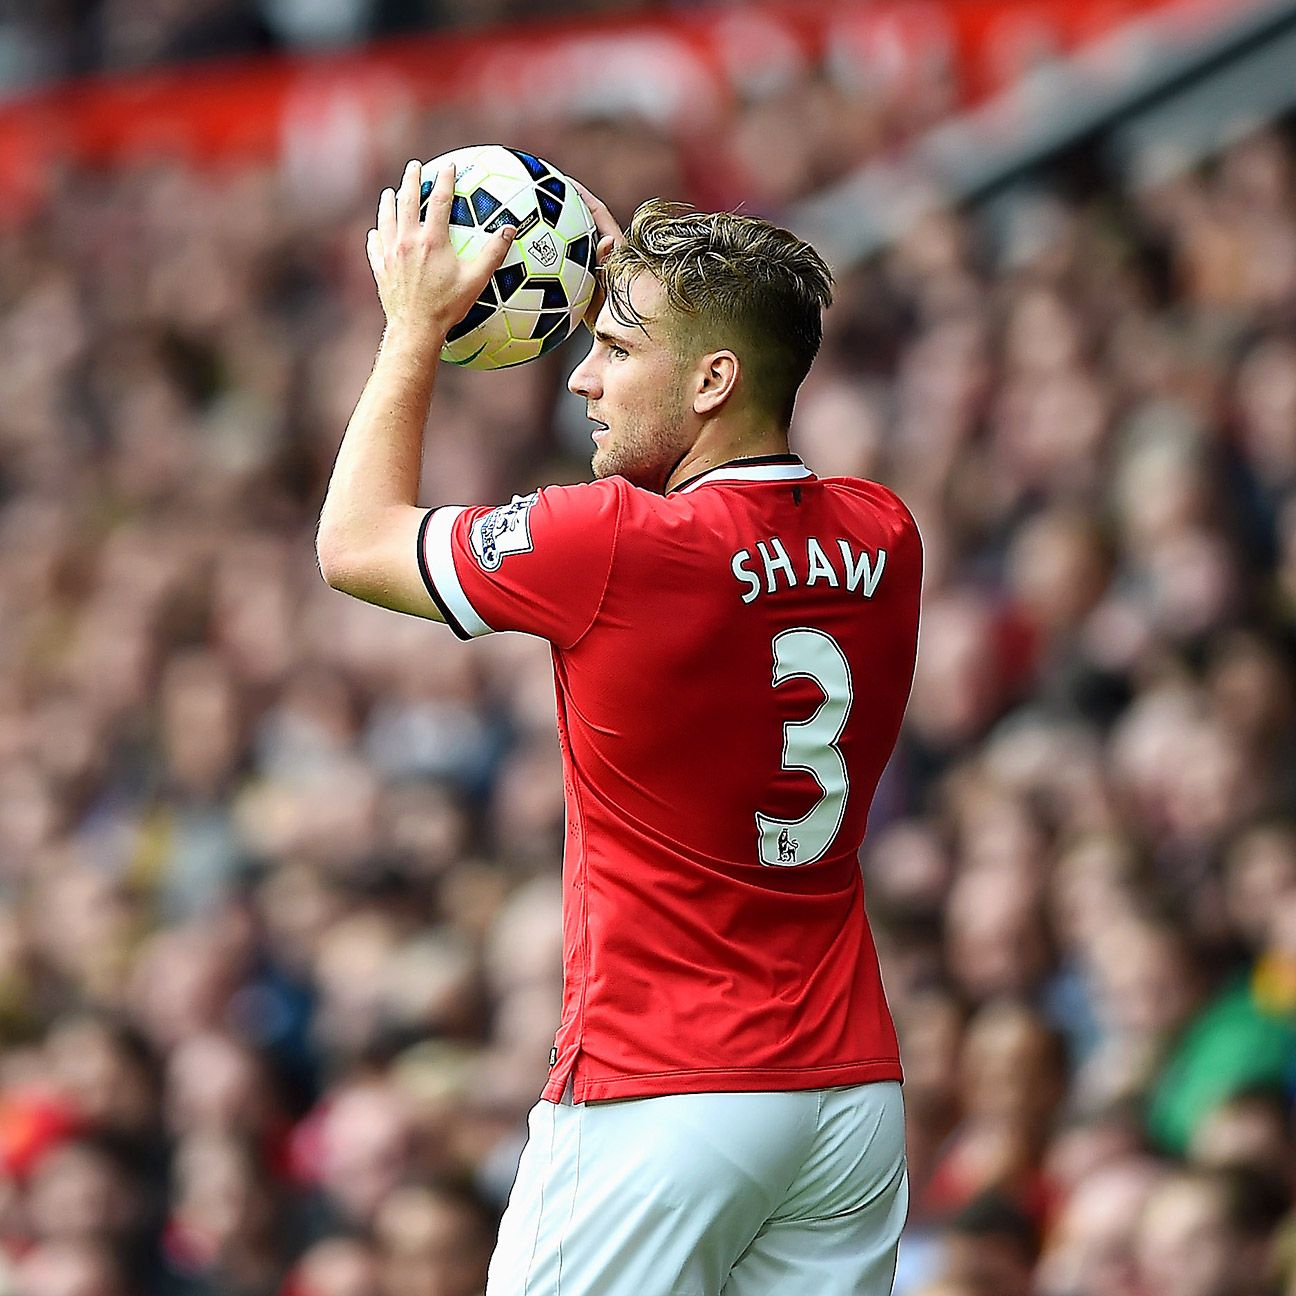 The improvement from Luke Shaw in his second season at Old Trafford was notable.